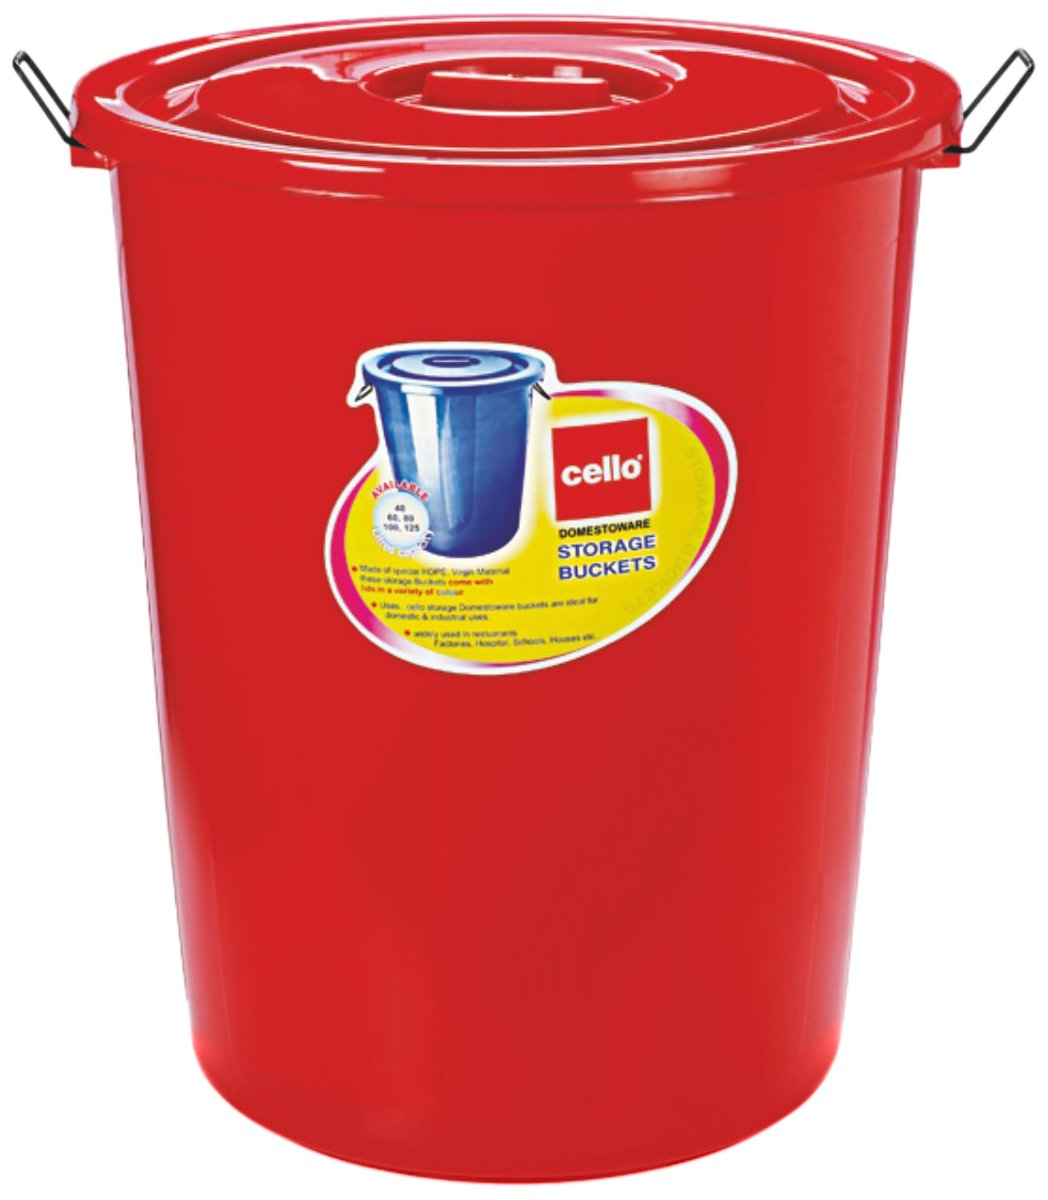 Cello Plastic Storage Bucket With Lid, Red, 100 Litre